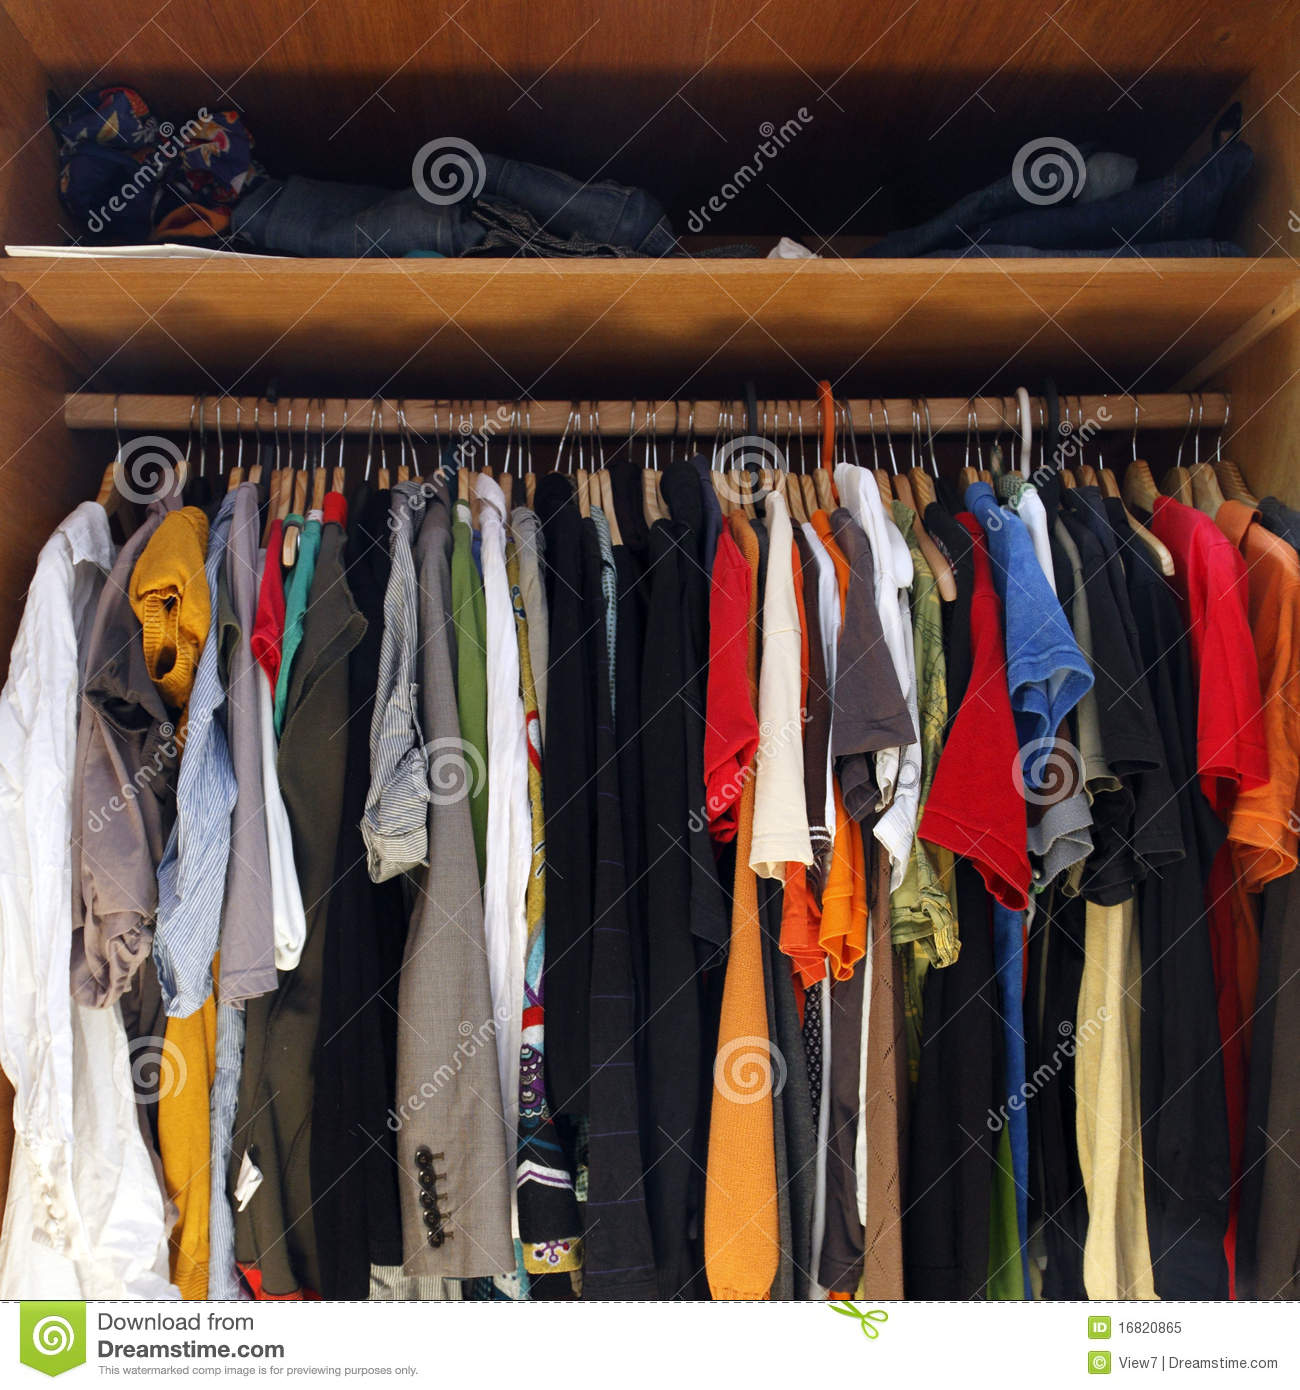 royaltyfree stock photo download clothes in full wardrobe